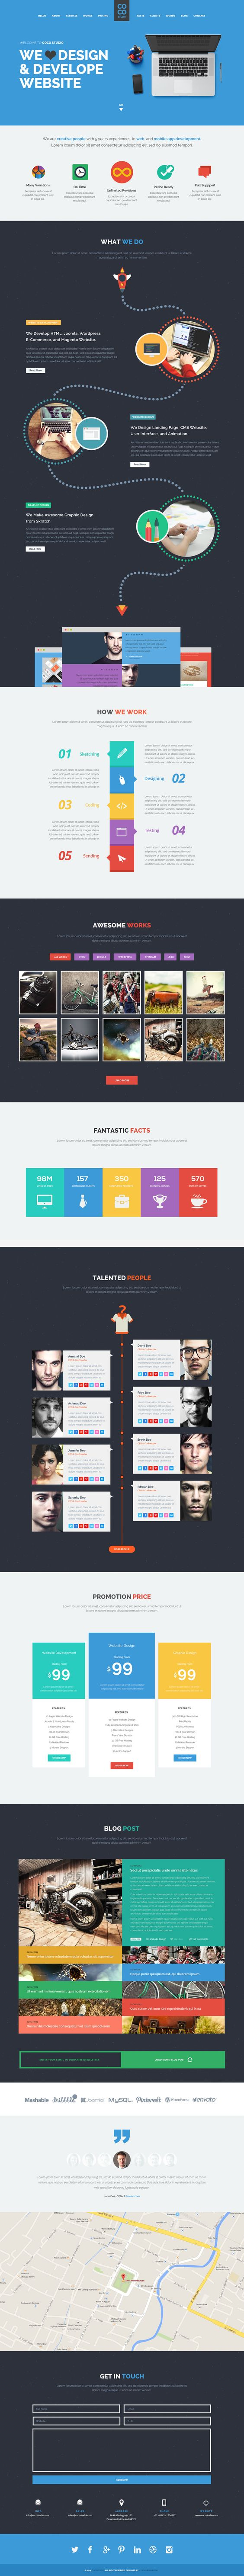 Coco - Flat One Page Website Template on Behance